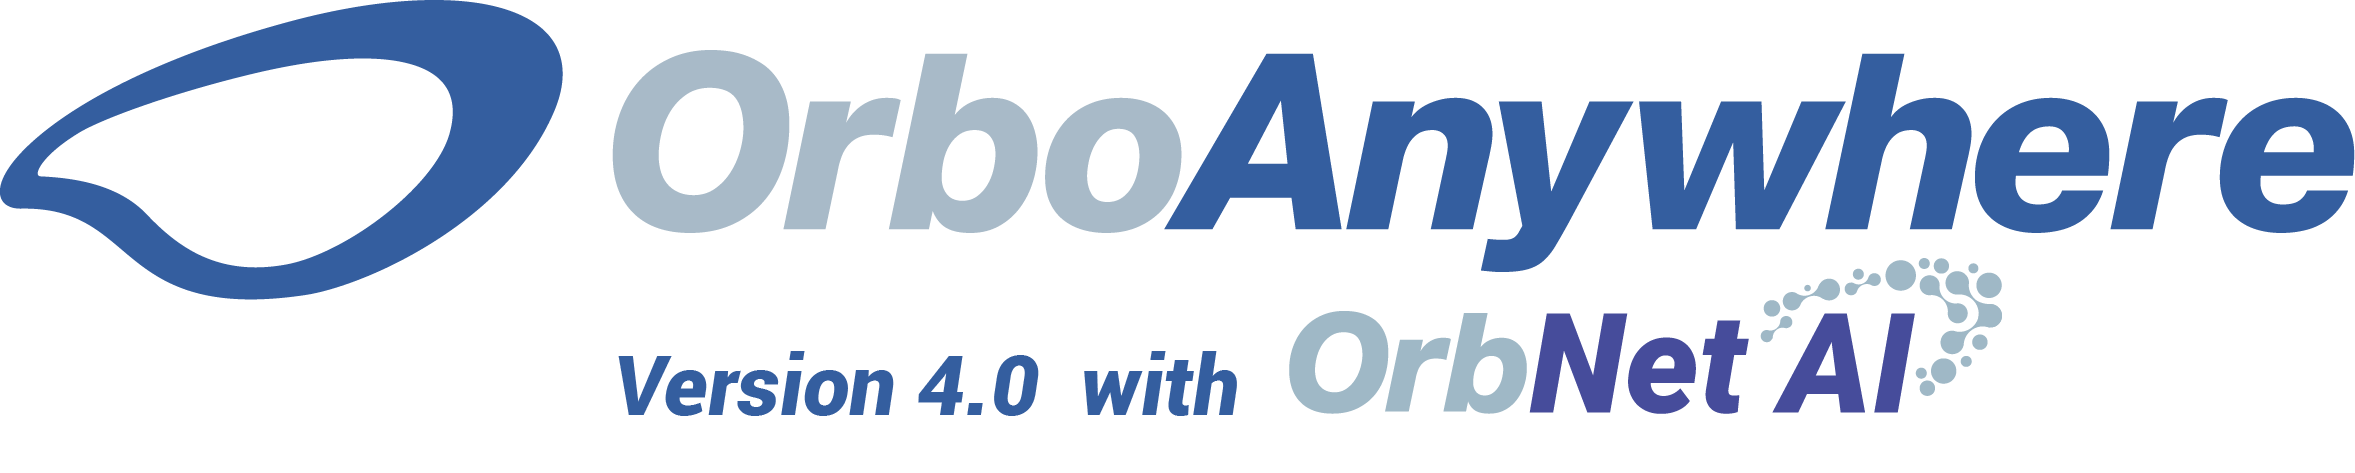 OrboAnywhere 4.0 with OrbNet FINAL